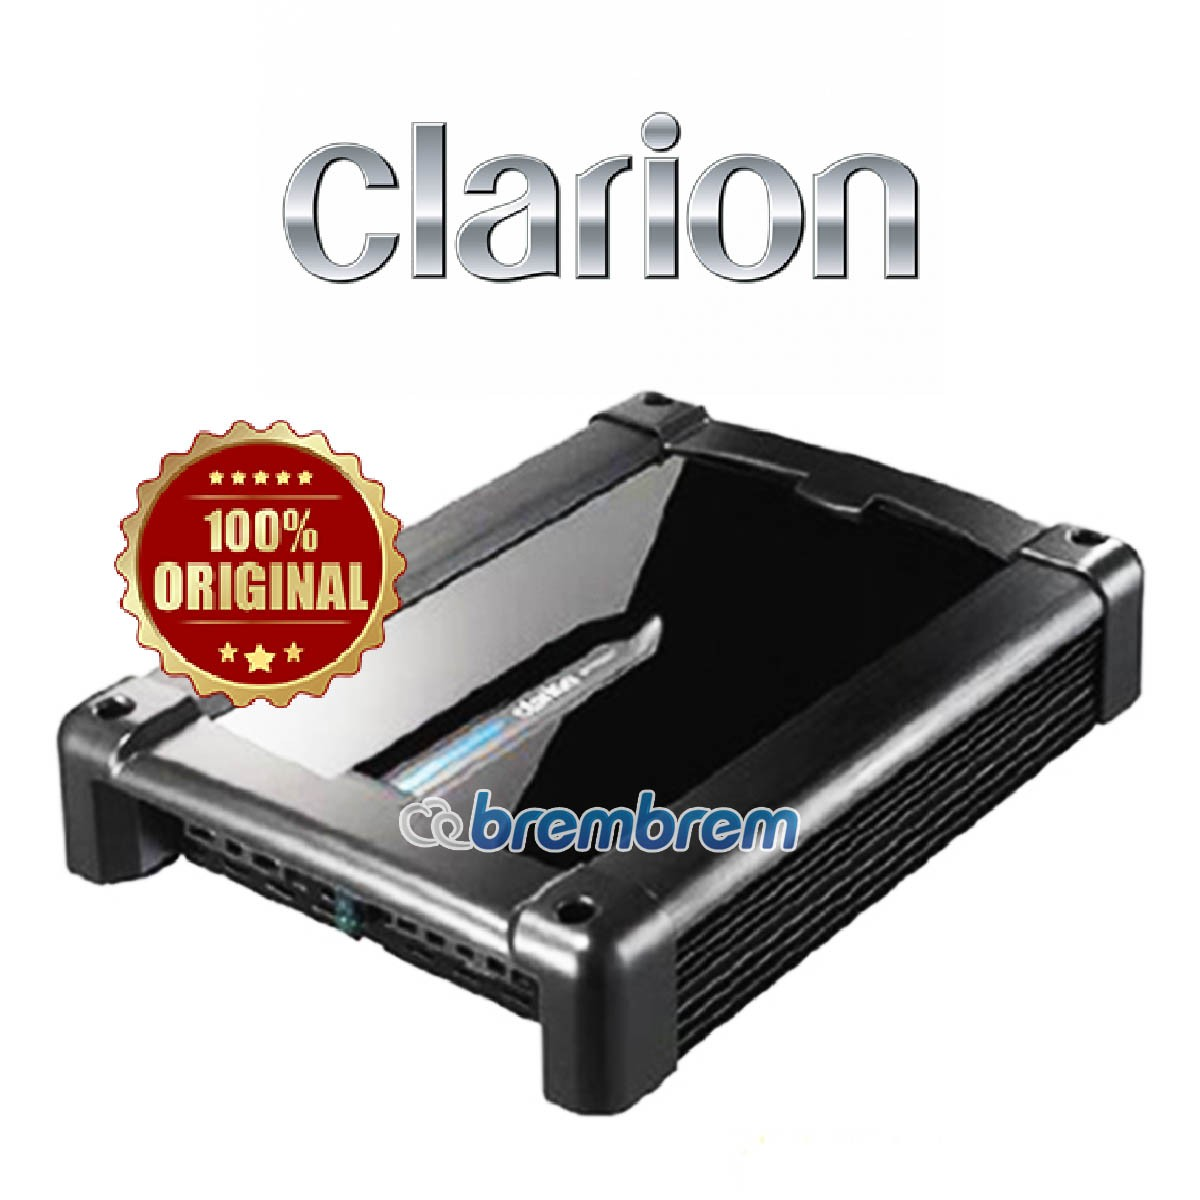 CLARION XR 2220 - POWER 2 CHANNEL